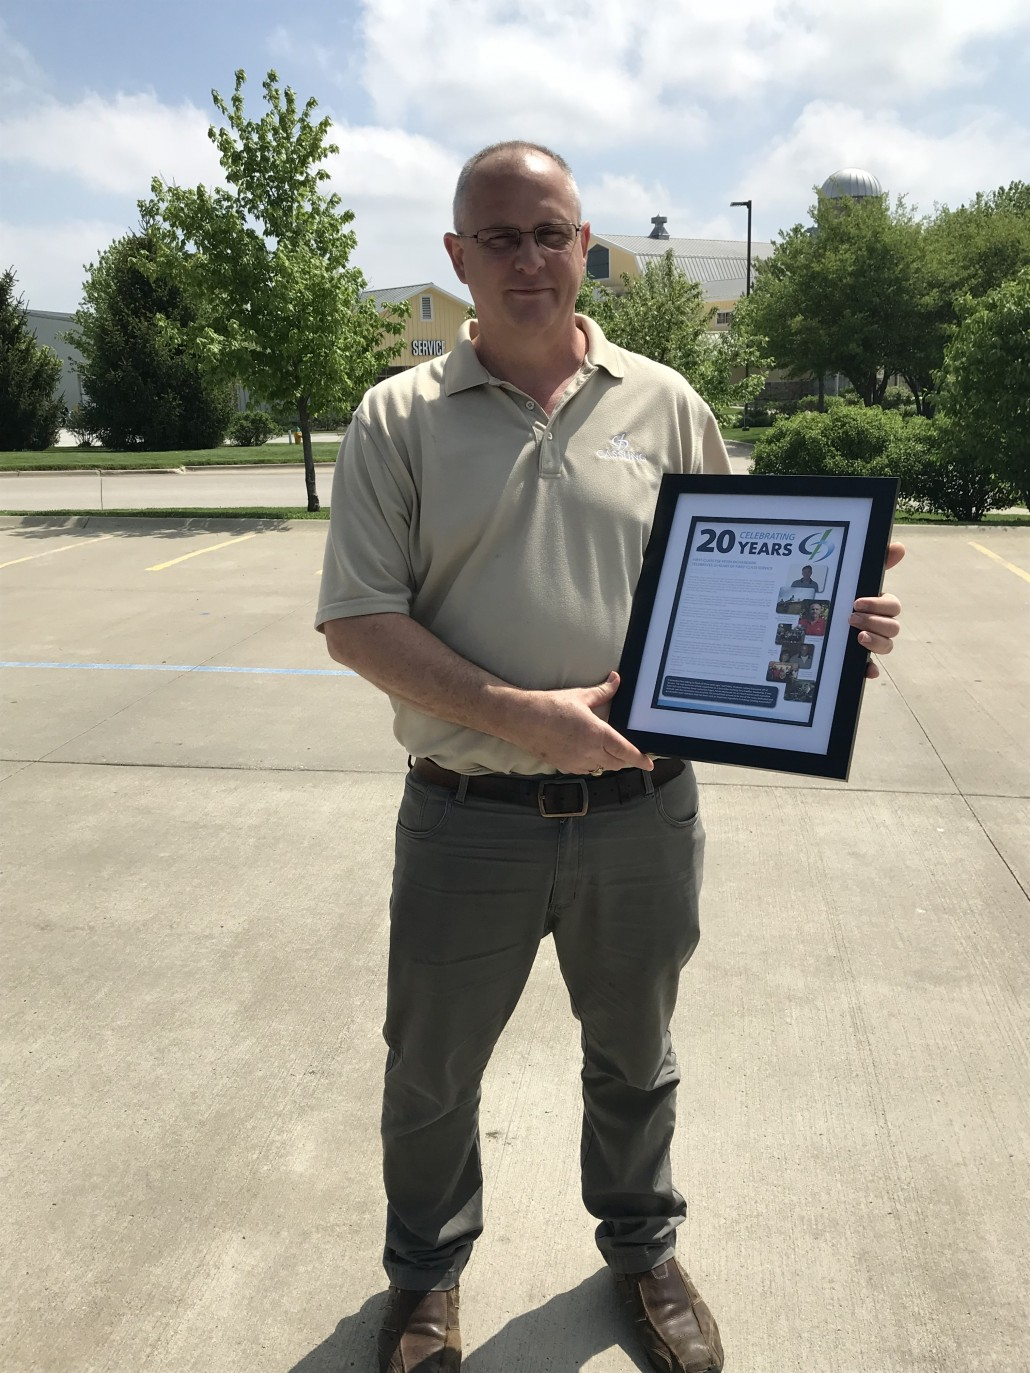 Kevin Richardson with Plaque